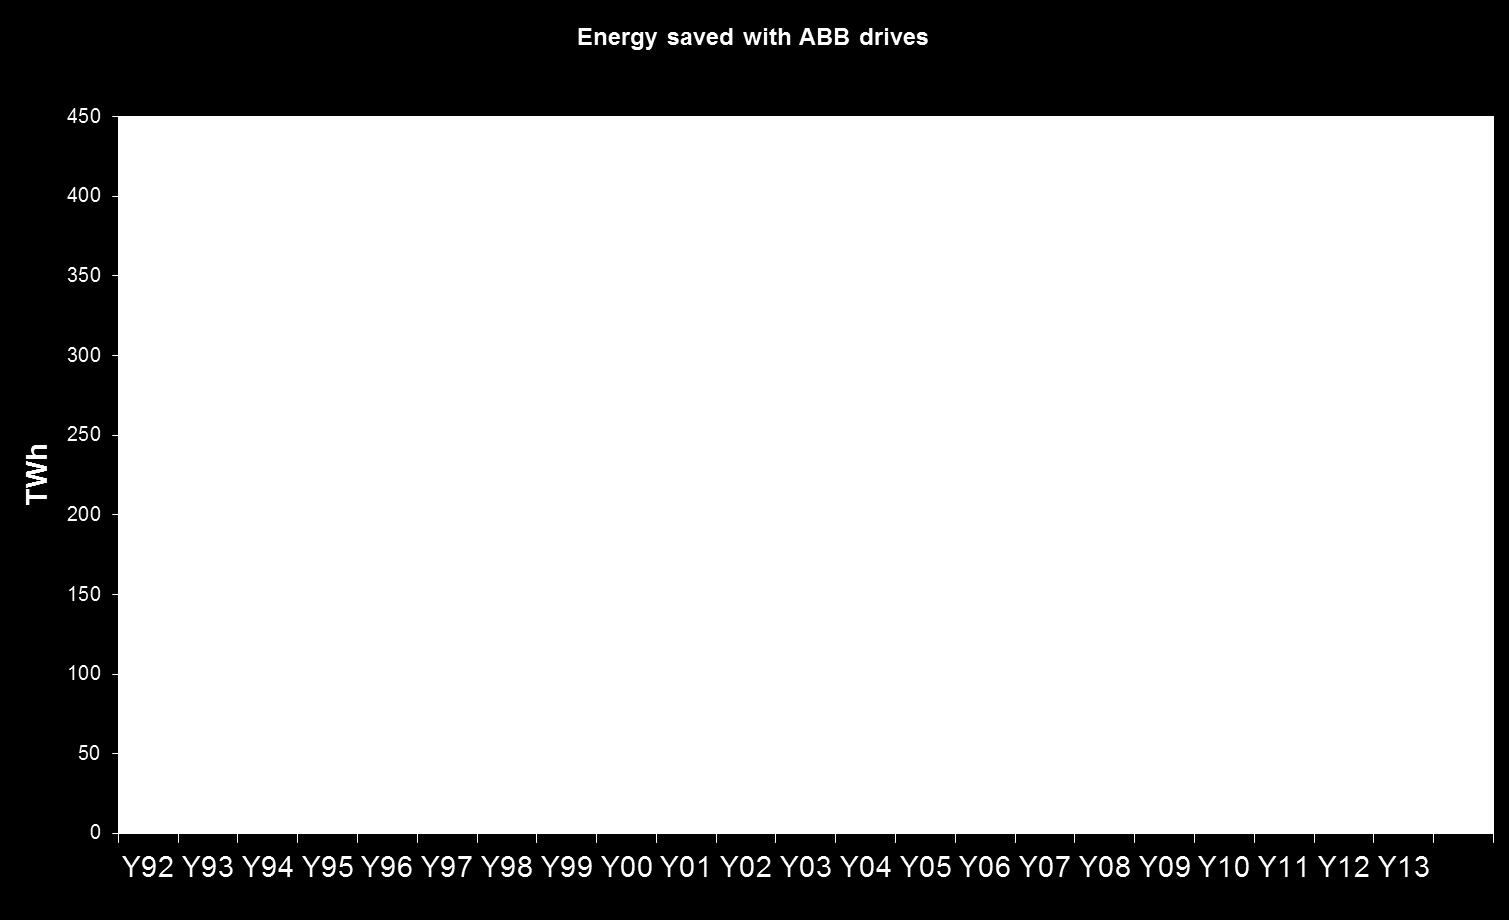 Úspory el. energie s měniči frekvence ABB The installed base of ABB drives saved about 400 TWh in 2013, equivalent to the consumption per year of more than 100 million households in the EU-27.